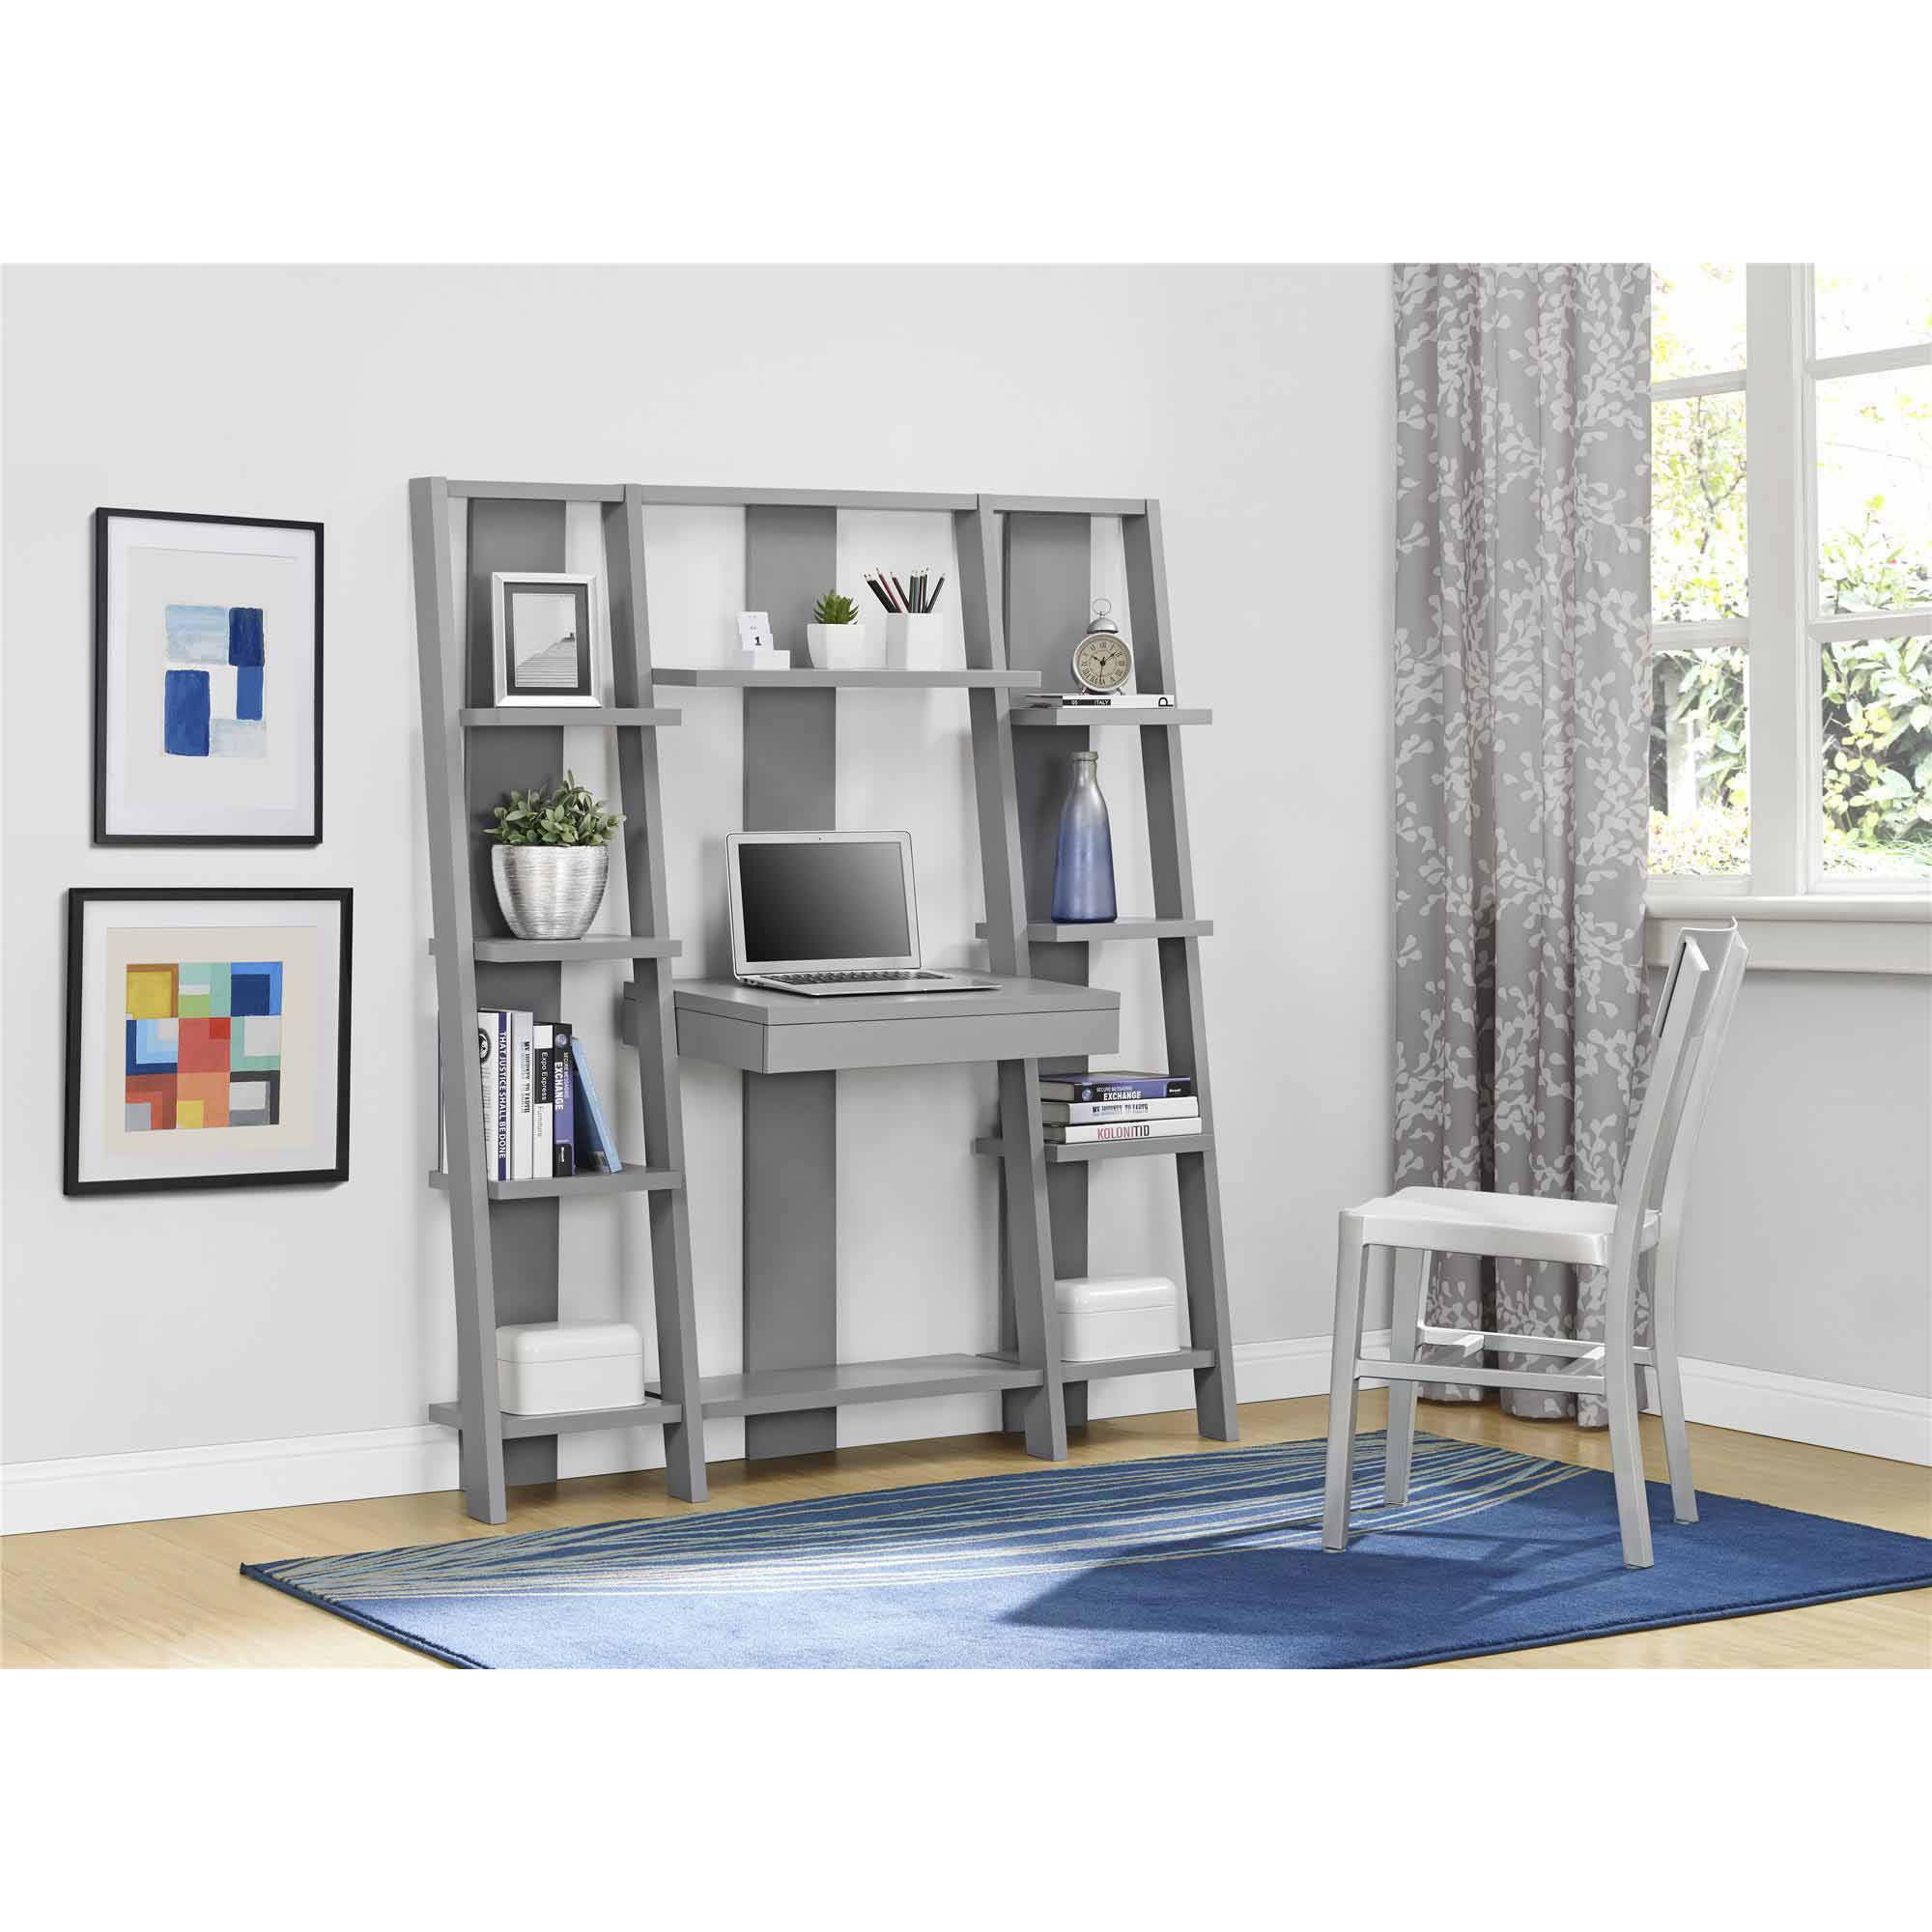 Altra Furniture Ladder Storage Office Wa - Walmart.com